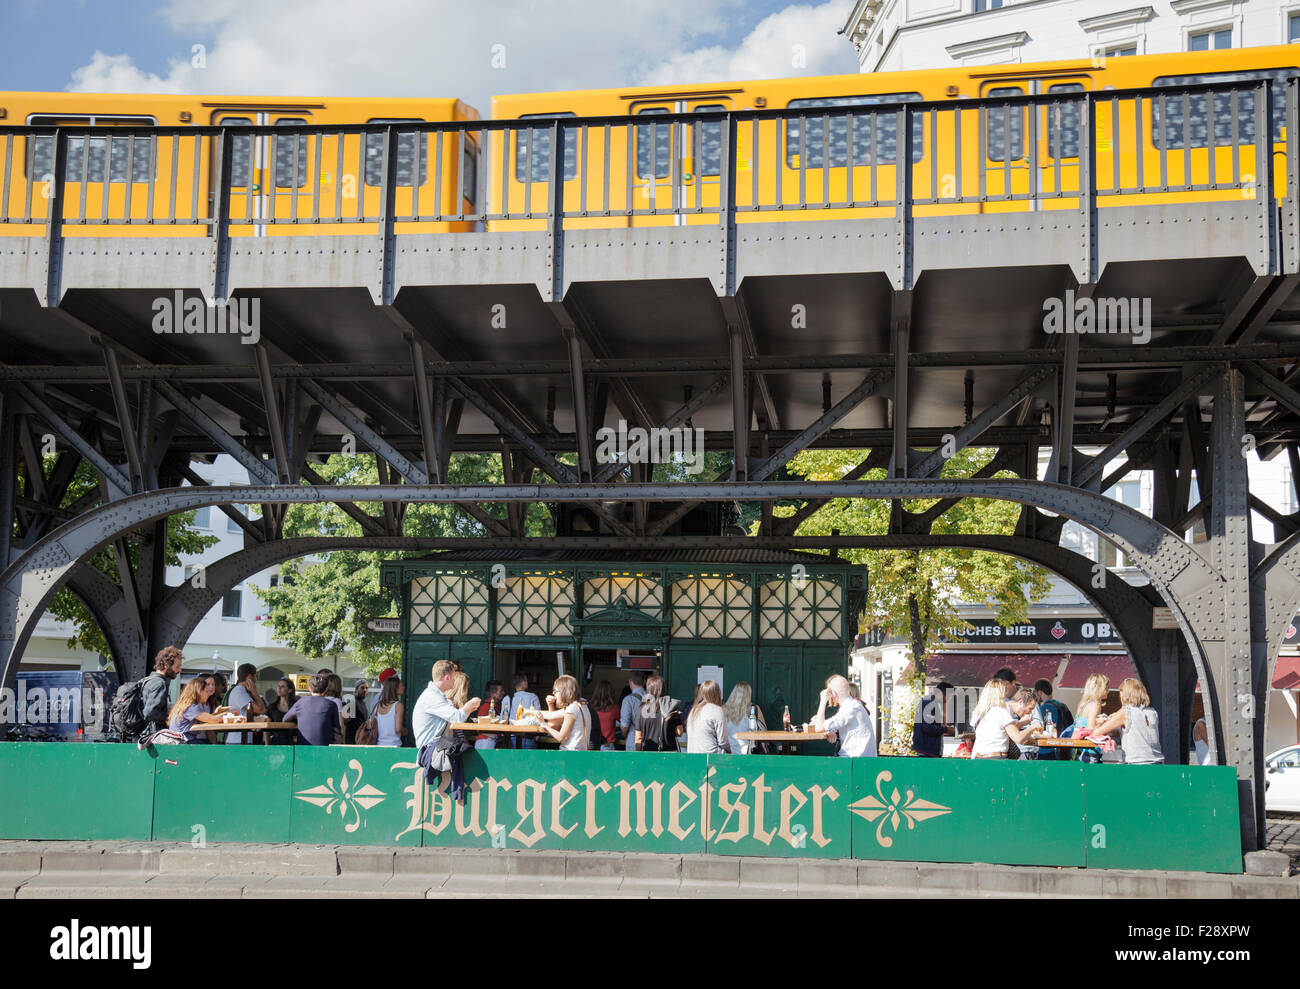 Burgermeister cafe / beer garden in a disused toilet under the U-Bahn line, Berlin, Germany - Stock Image